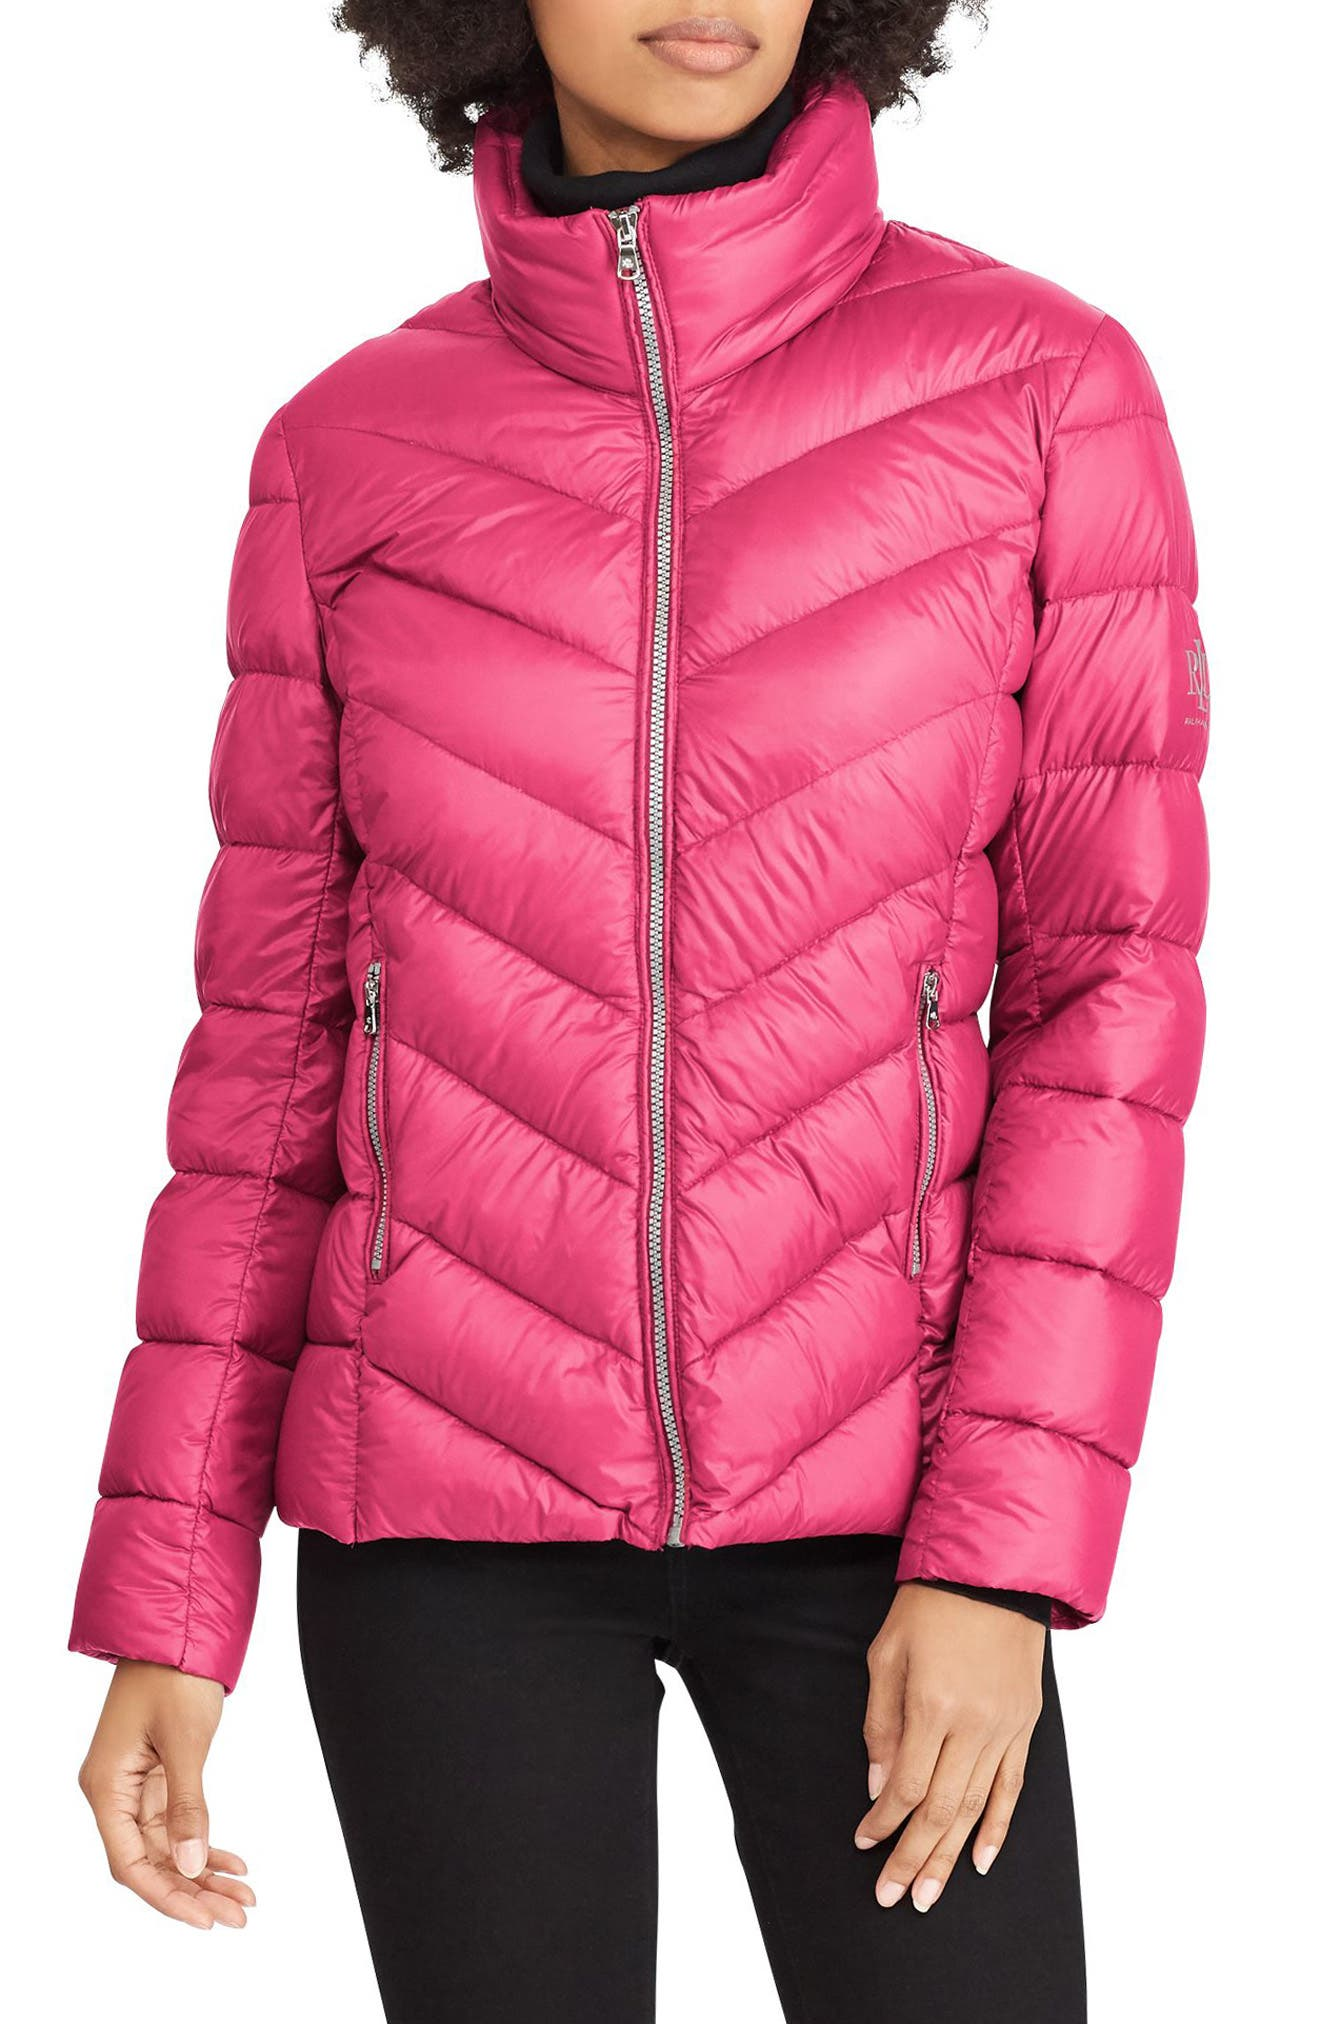 Chevron Quilted Packable Down Jacket,                             Main thumbnail 1, color,                             BERRY